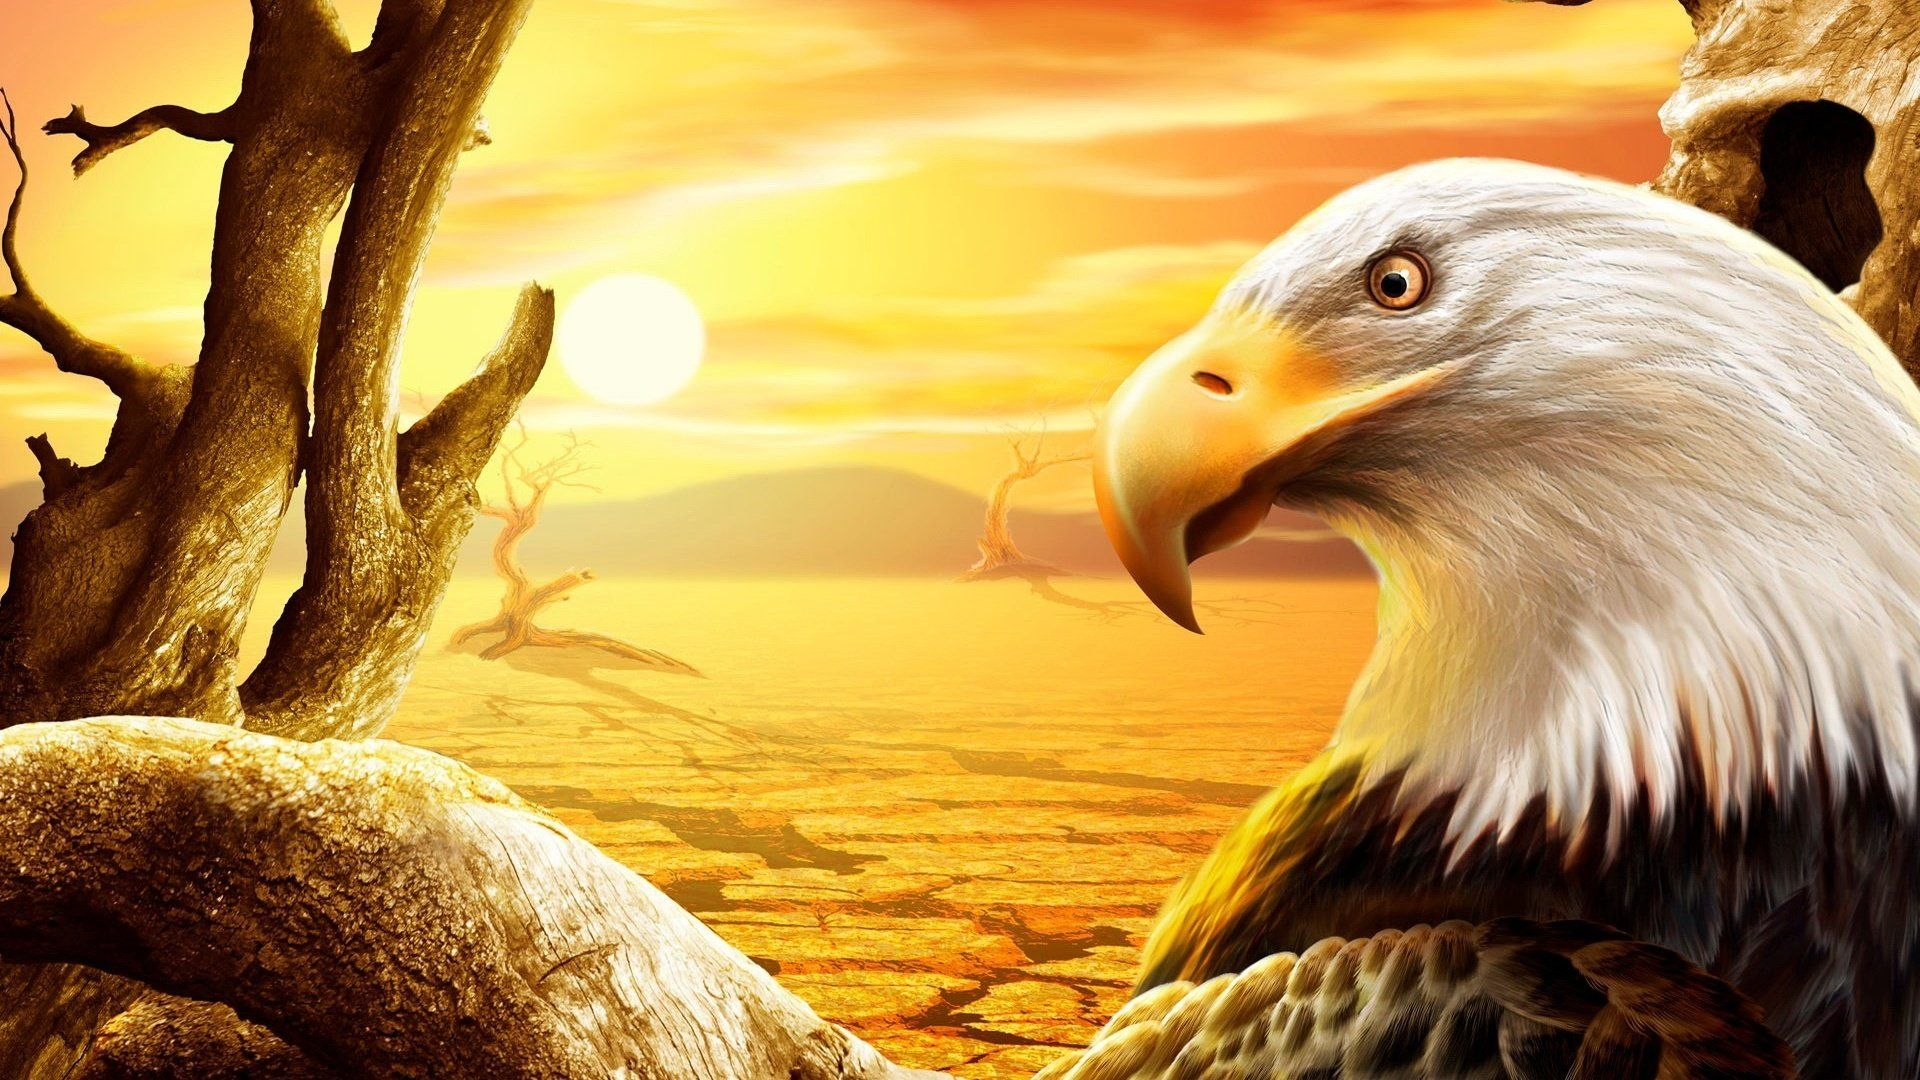 Eagle Pictures For Wallpaper 3d